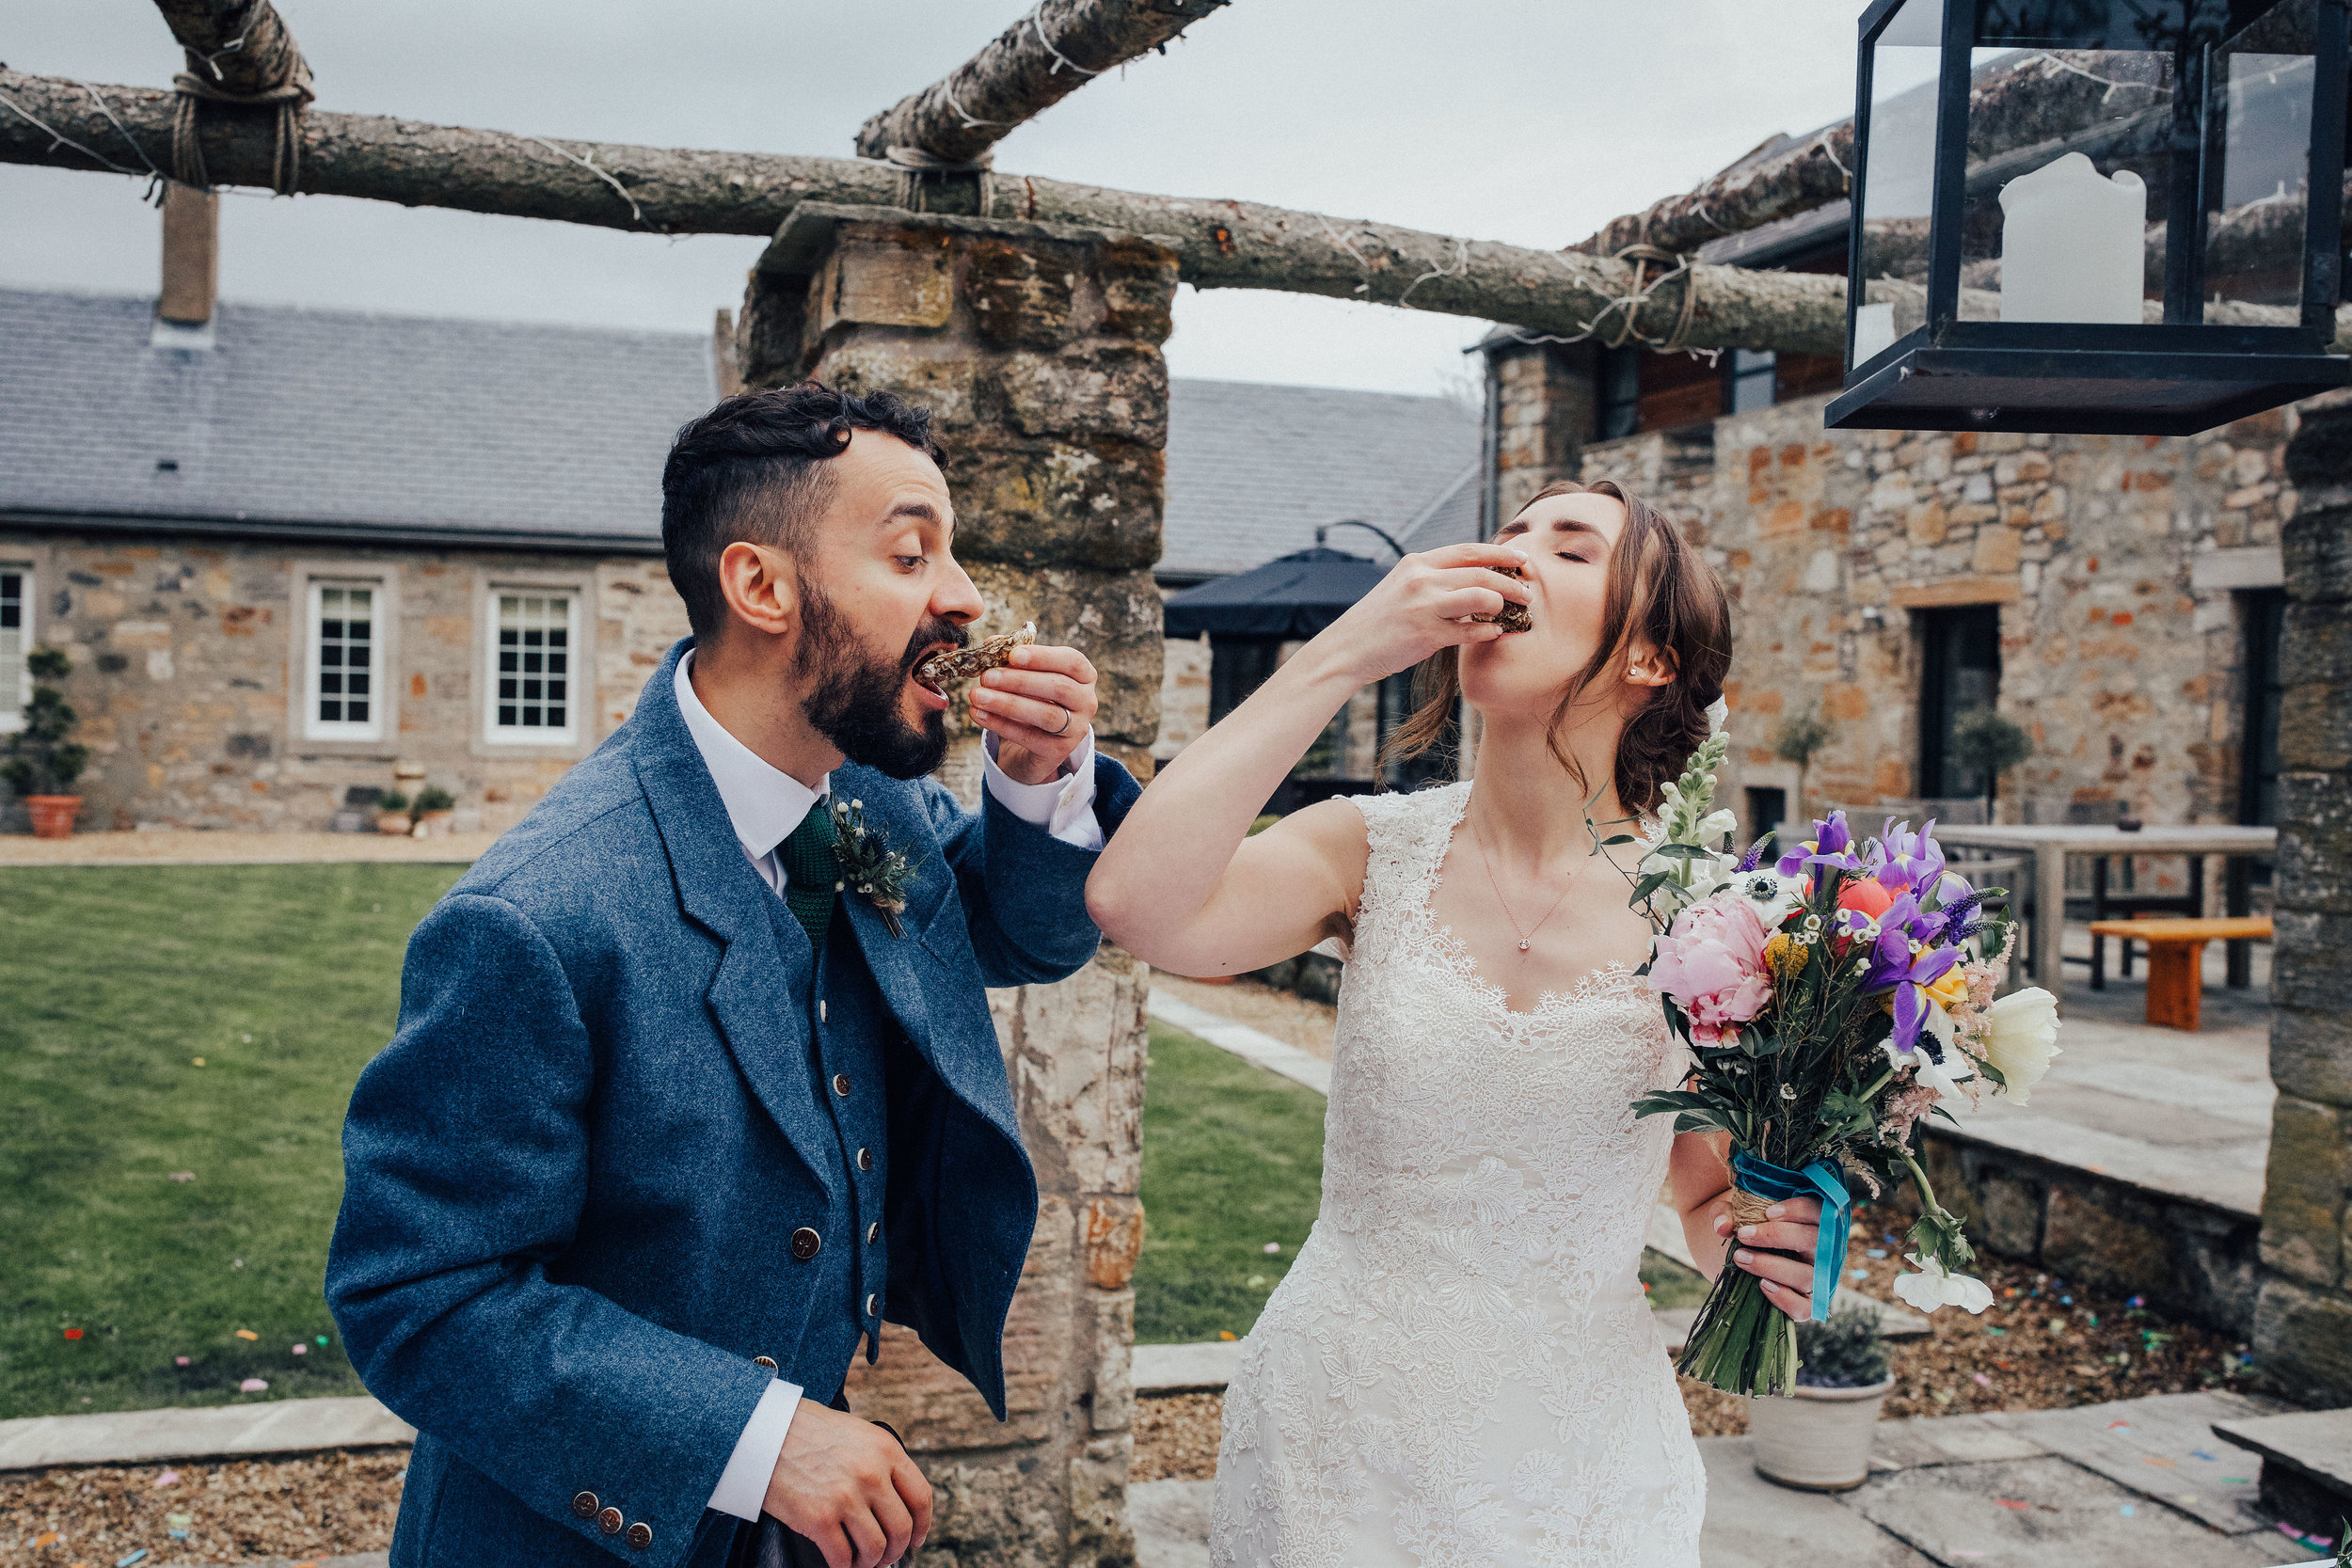 PJ_PHILLIPS_PHOTOGRAPHY_2018_SCOTLAND_WEDDING_PHOTOOGRAPHER_385.jpg